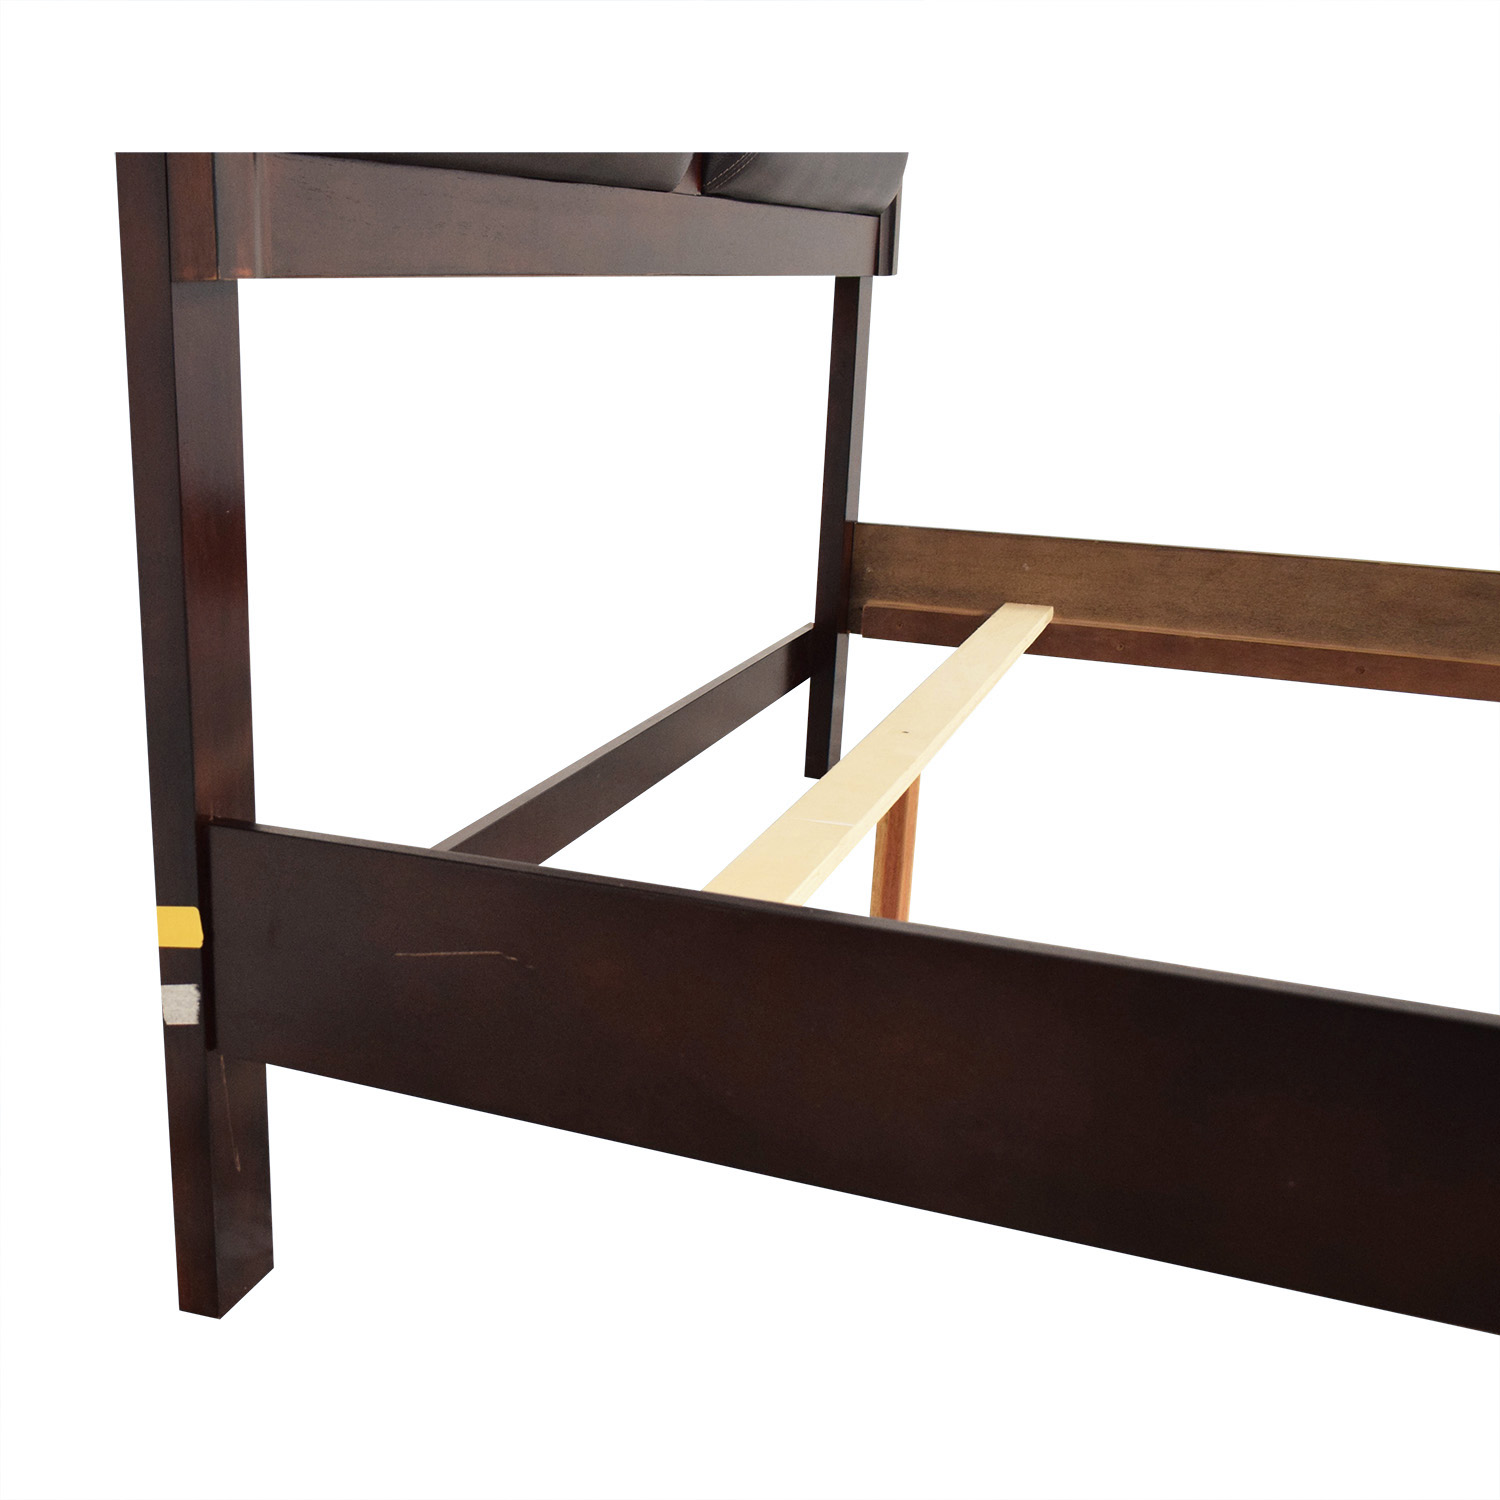 Panel Headboard Queen Bed Frame second hand